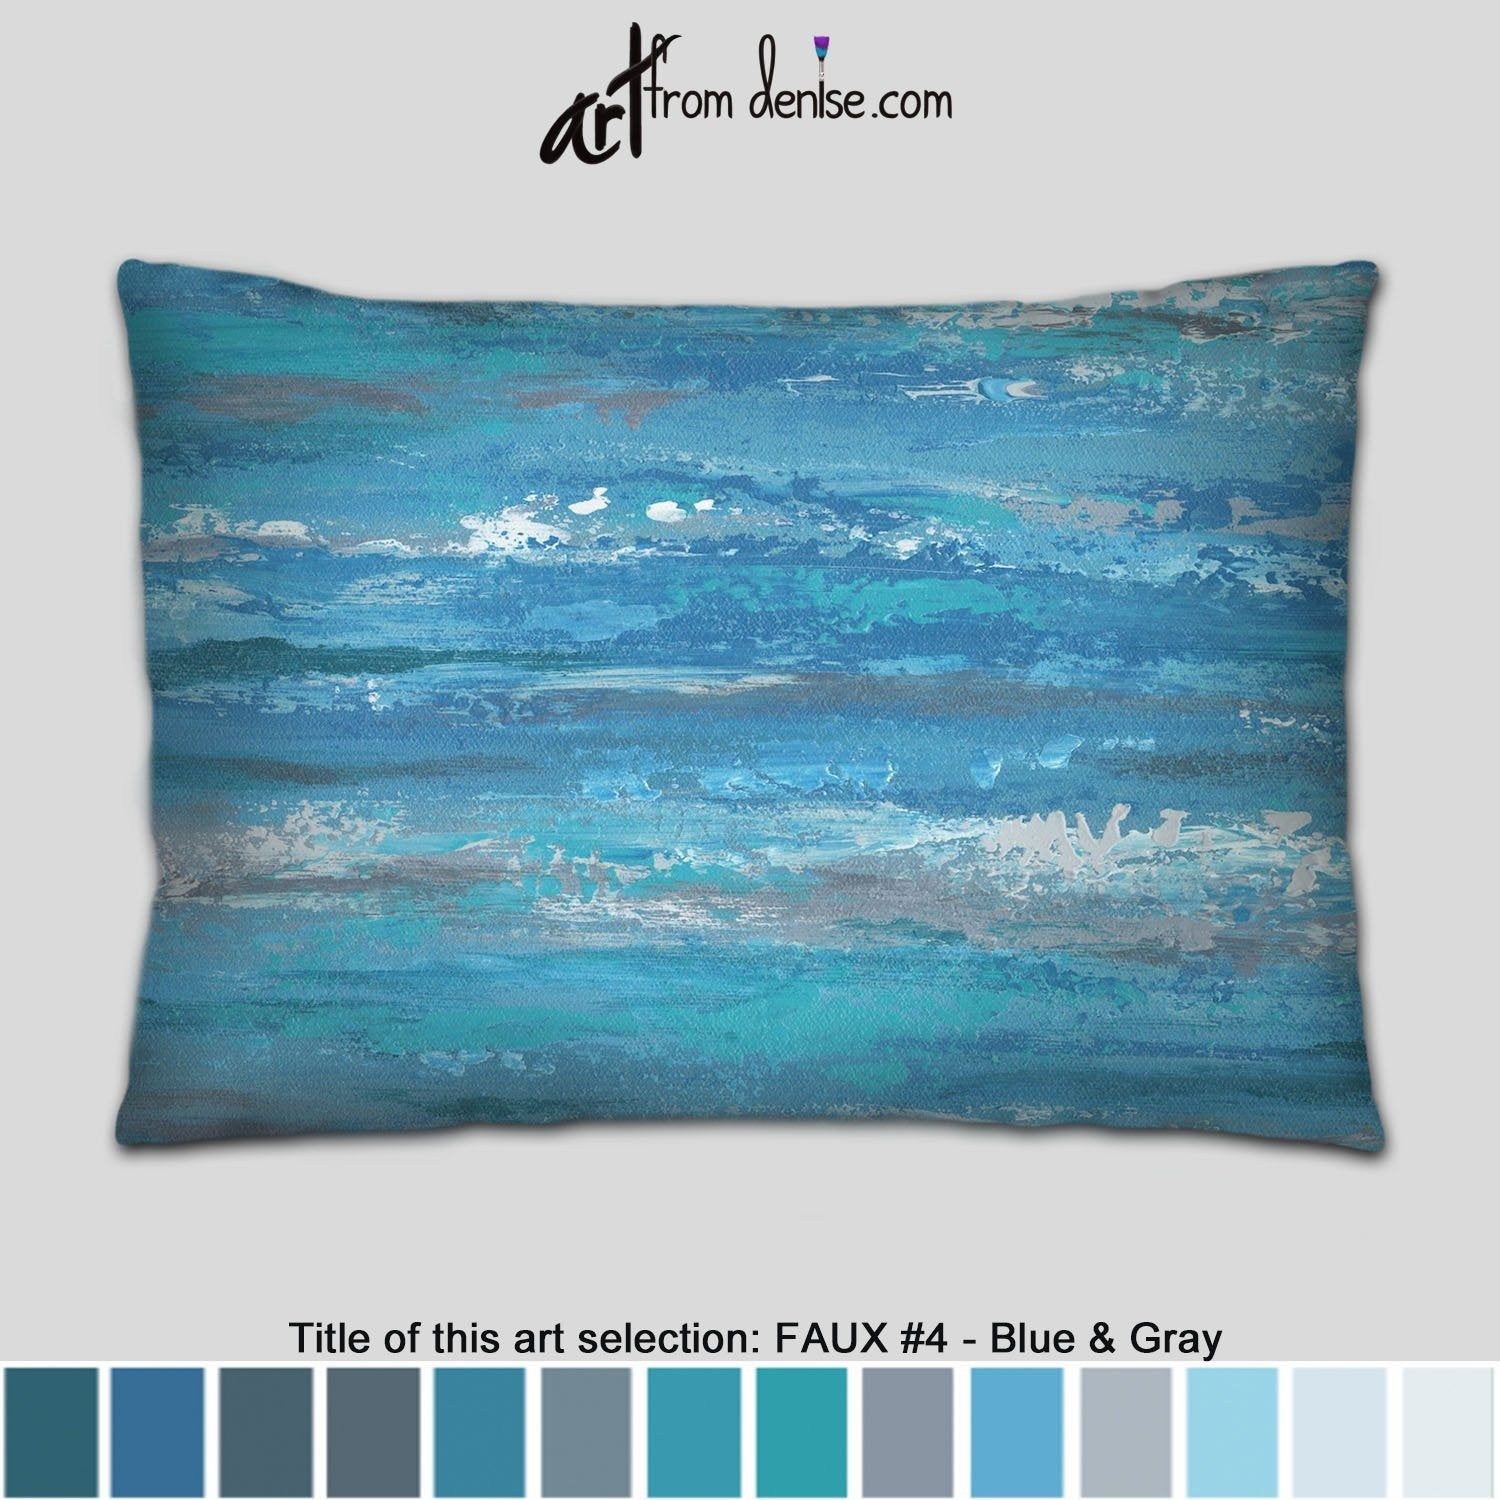 Large Blue Lumbar Pillow Gray Teal And Blue Throw Pillows For Couch Pillows Set Abstract Bed Decor Pillow Or Outdoor Lumbar Sofa Cushion In 2020 Blue Throw Pillows Pillows Pillow Set